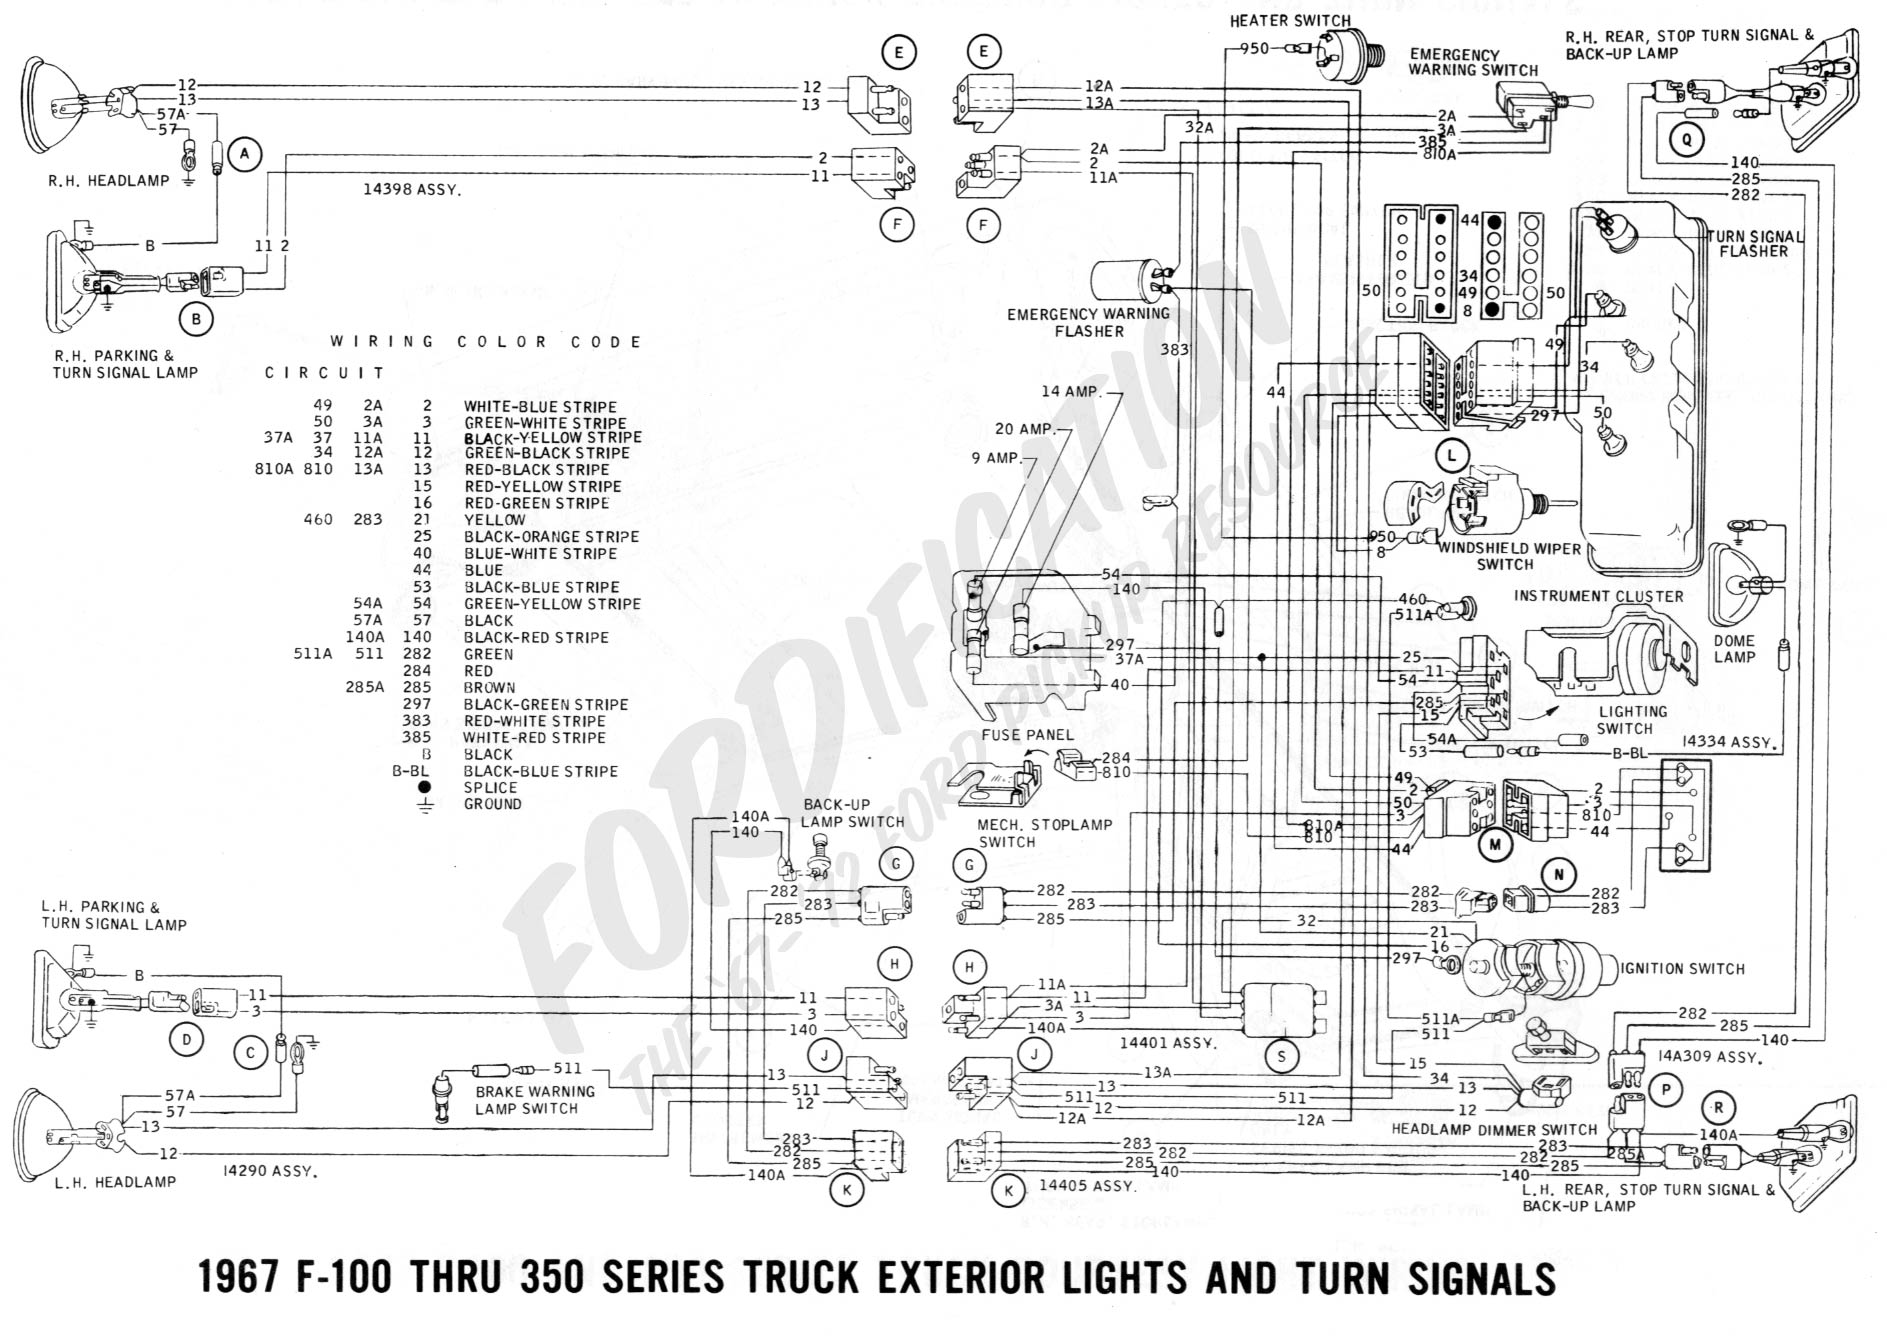 wiring 1967extlights02 turn signal wiring schematic diagram circuit and schematics diagram signal stat 800 wiring diagram at bakdesigns.co